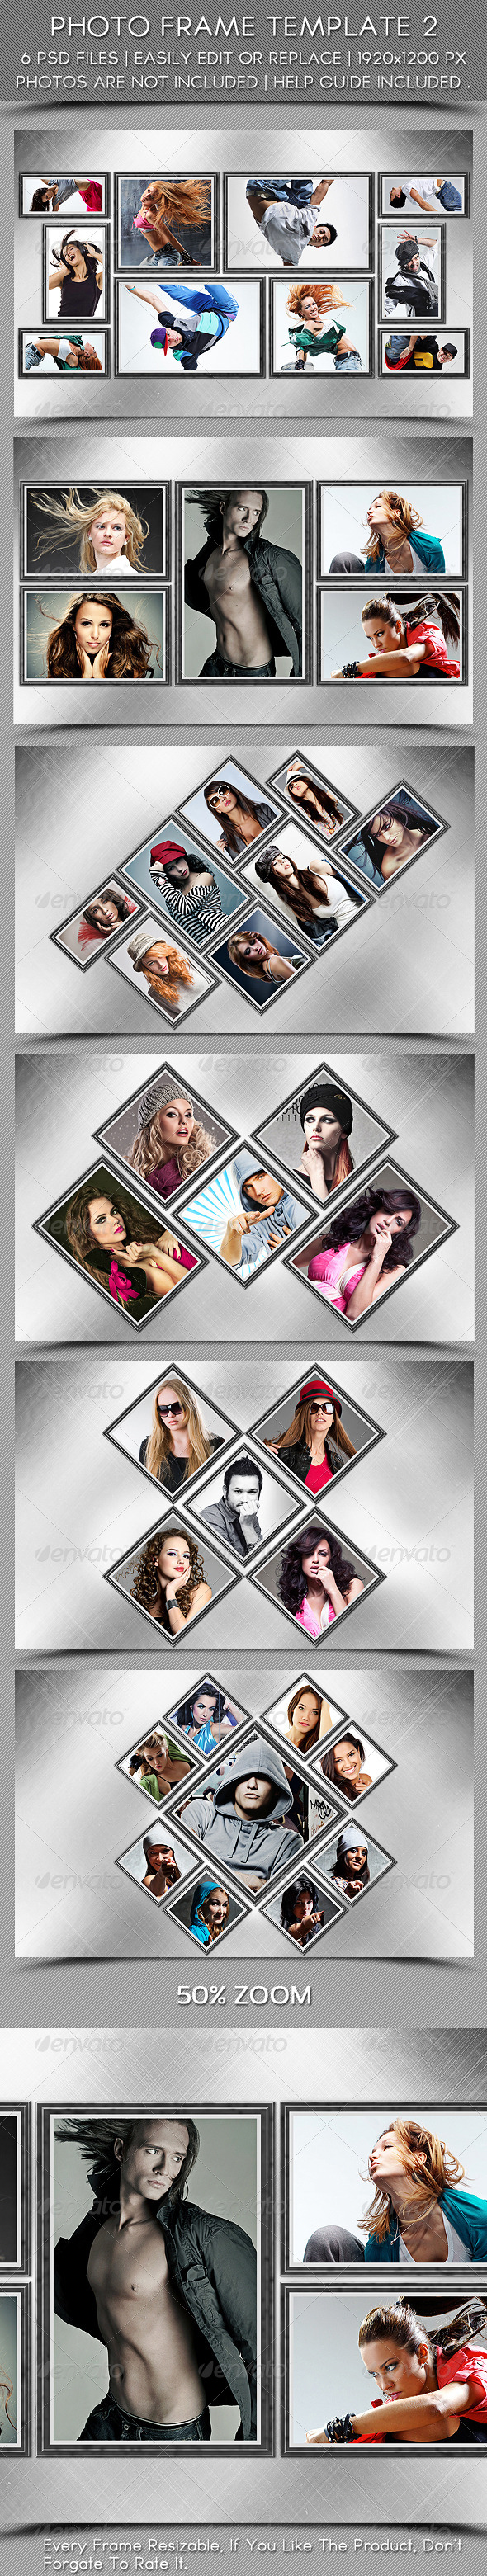 GraphicRiver Photo Frame Template V2 5600047